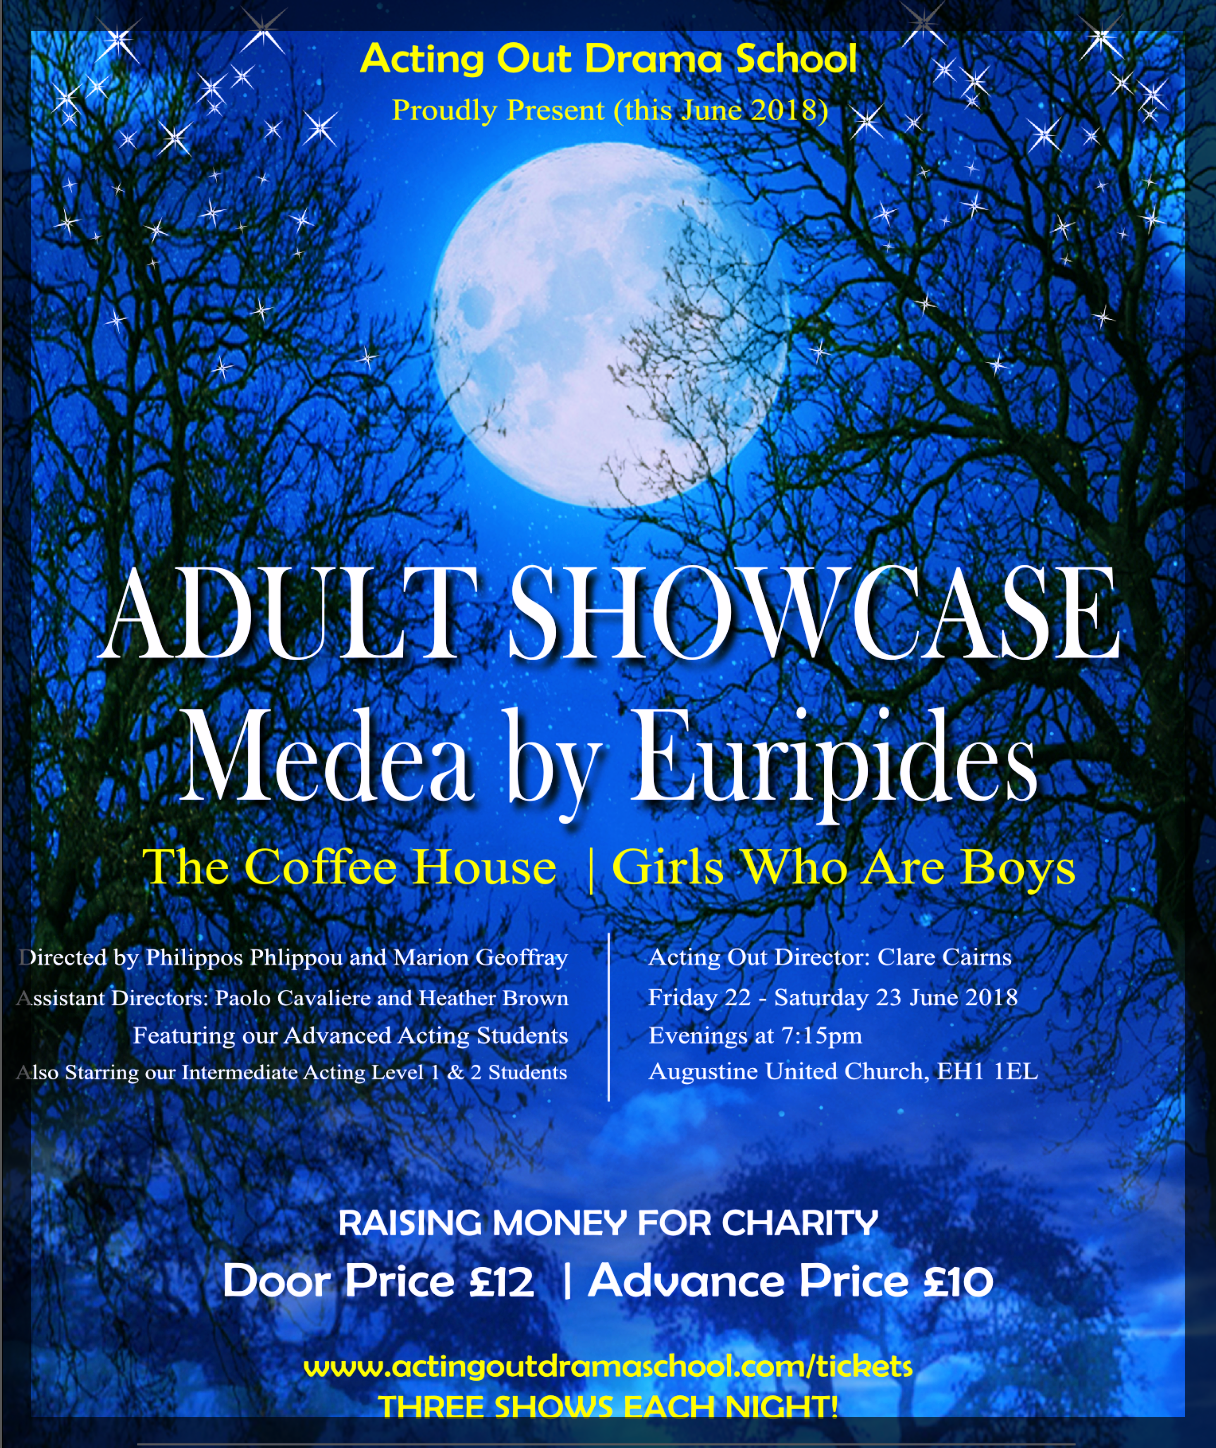 Flyer for June 2018 Show with Acting Out Drama Students